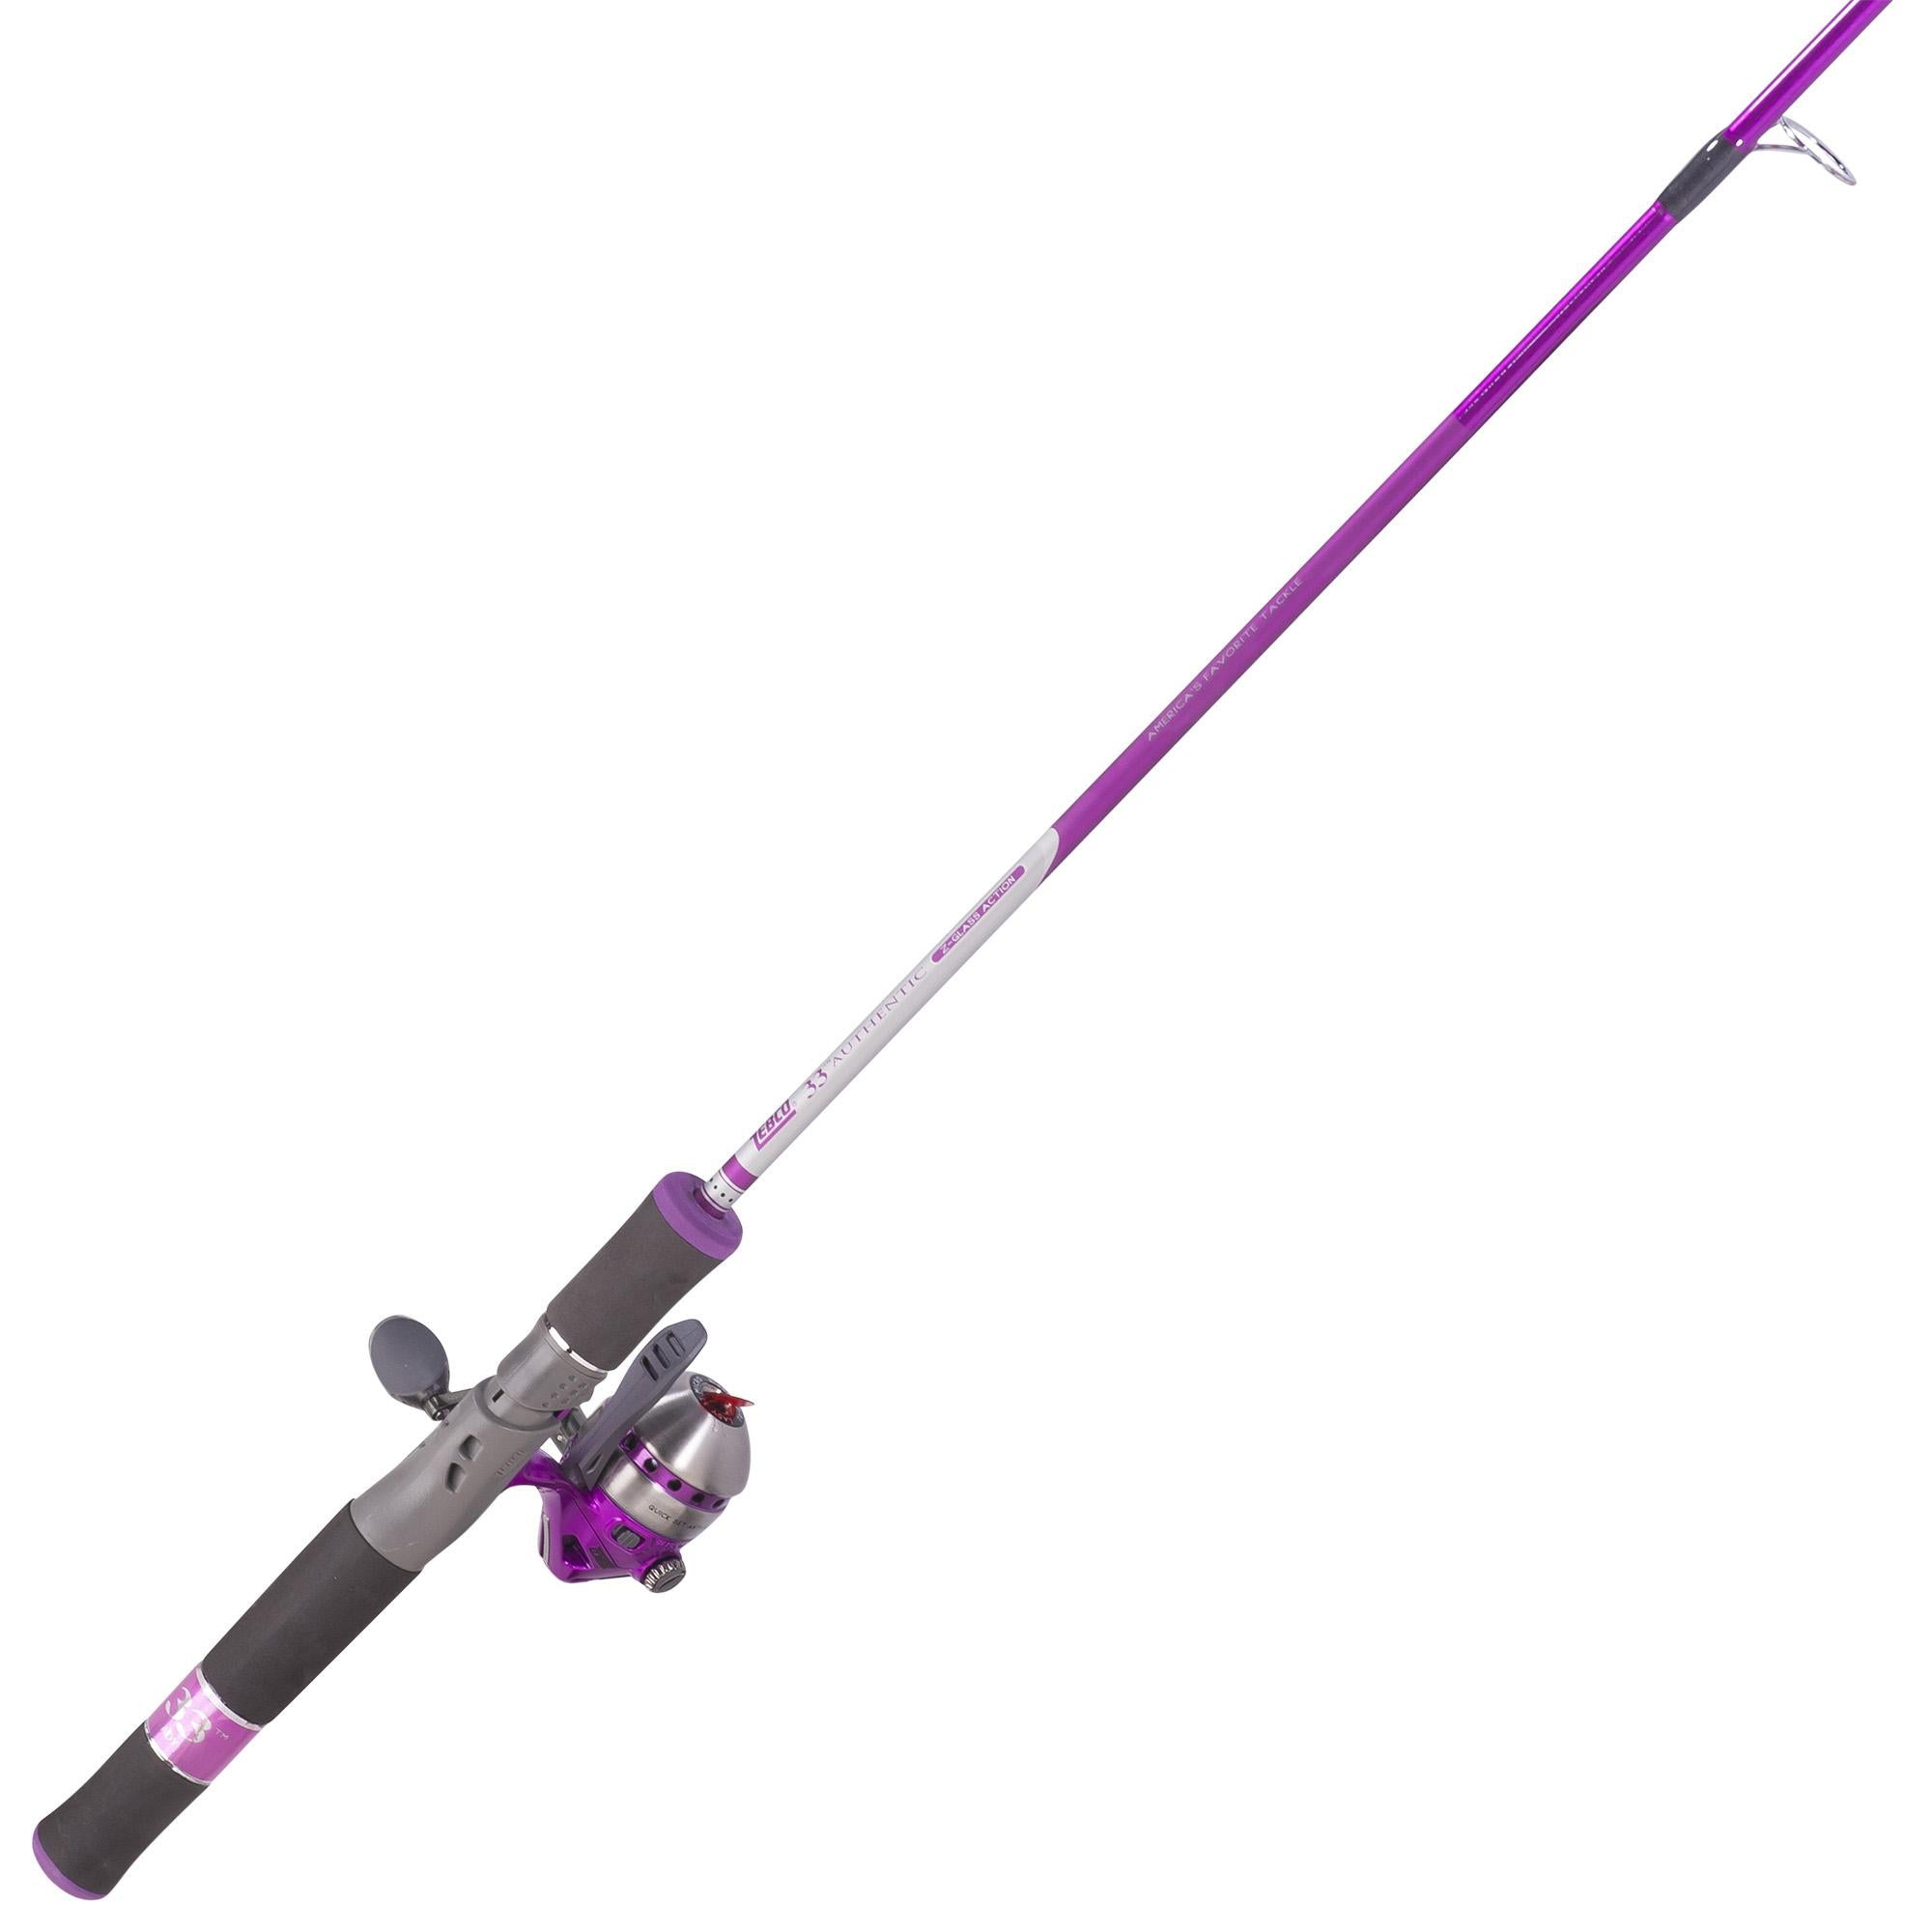 33 Micro Spincast Combo - Ladies, Ultralite Triggerspin, 5' Length, 2 Piece